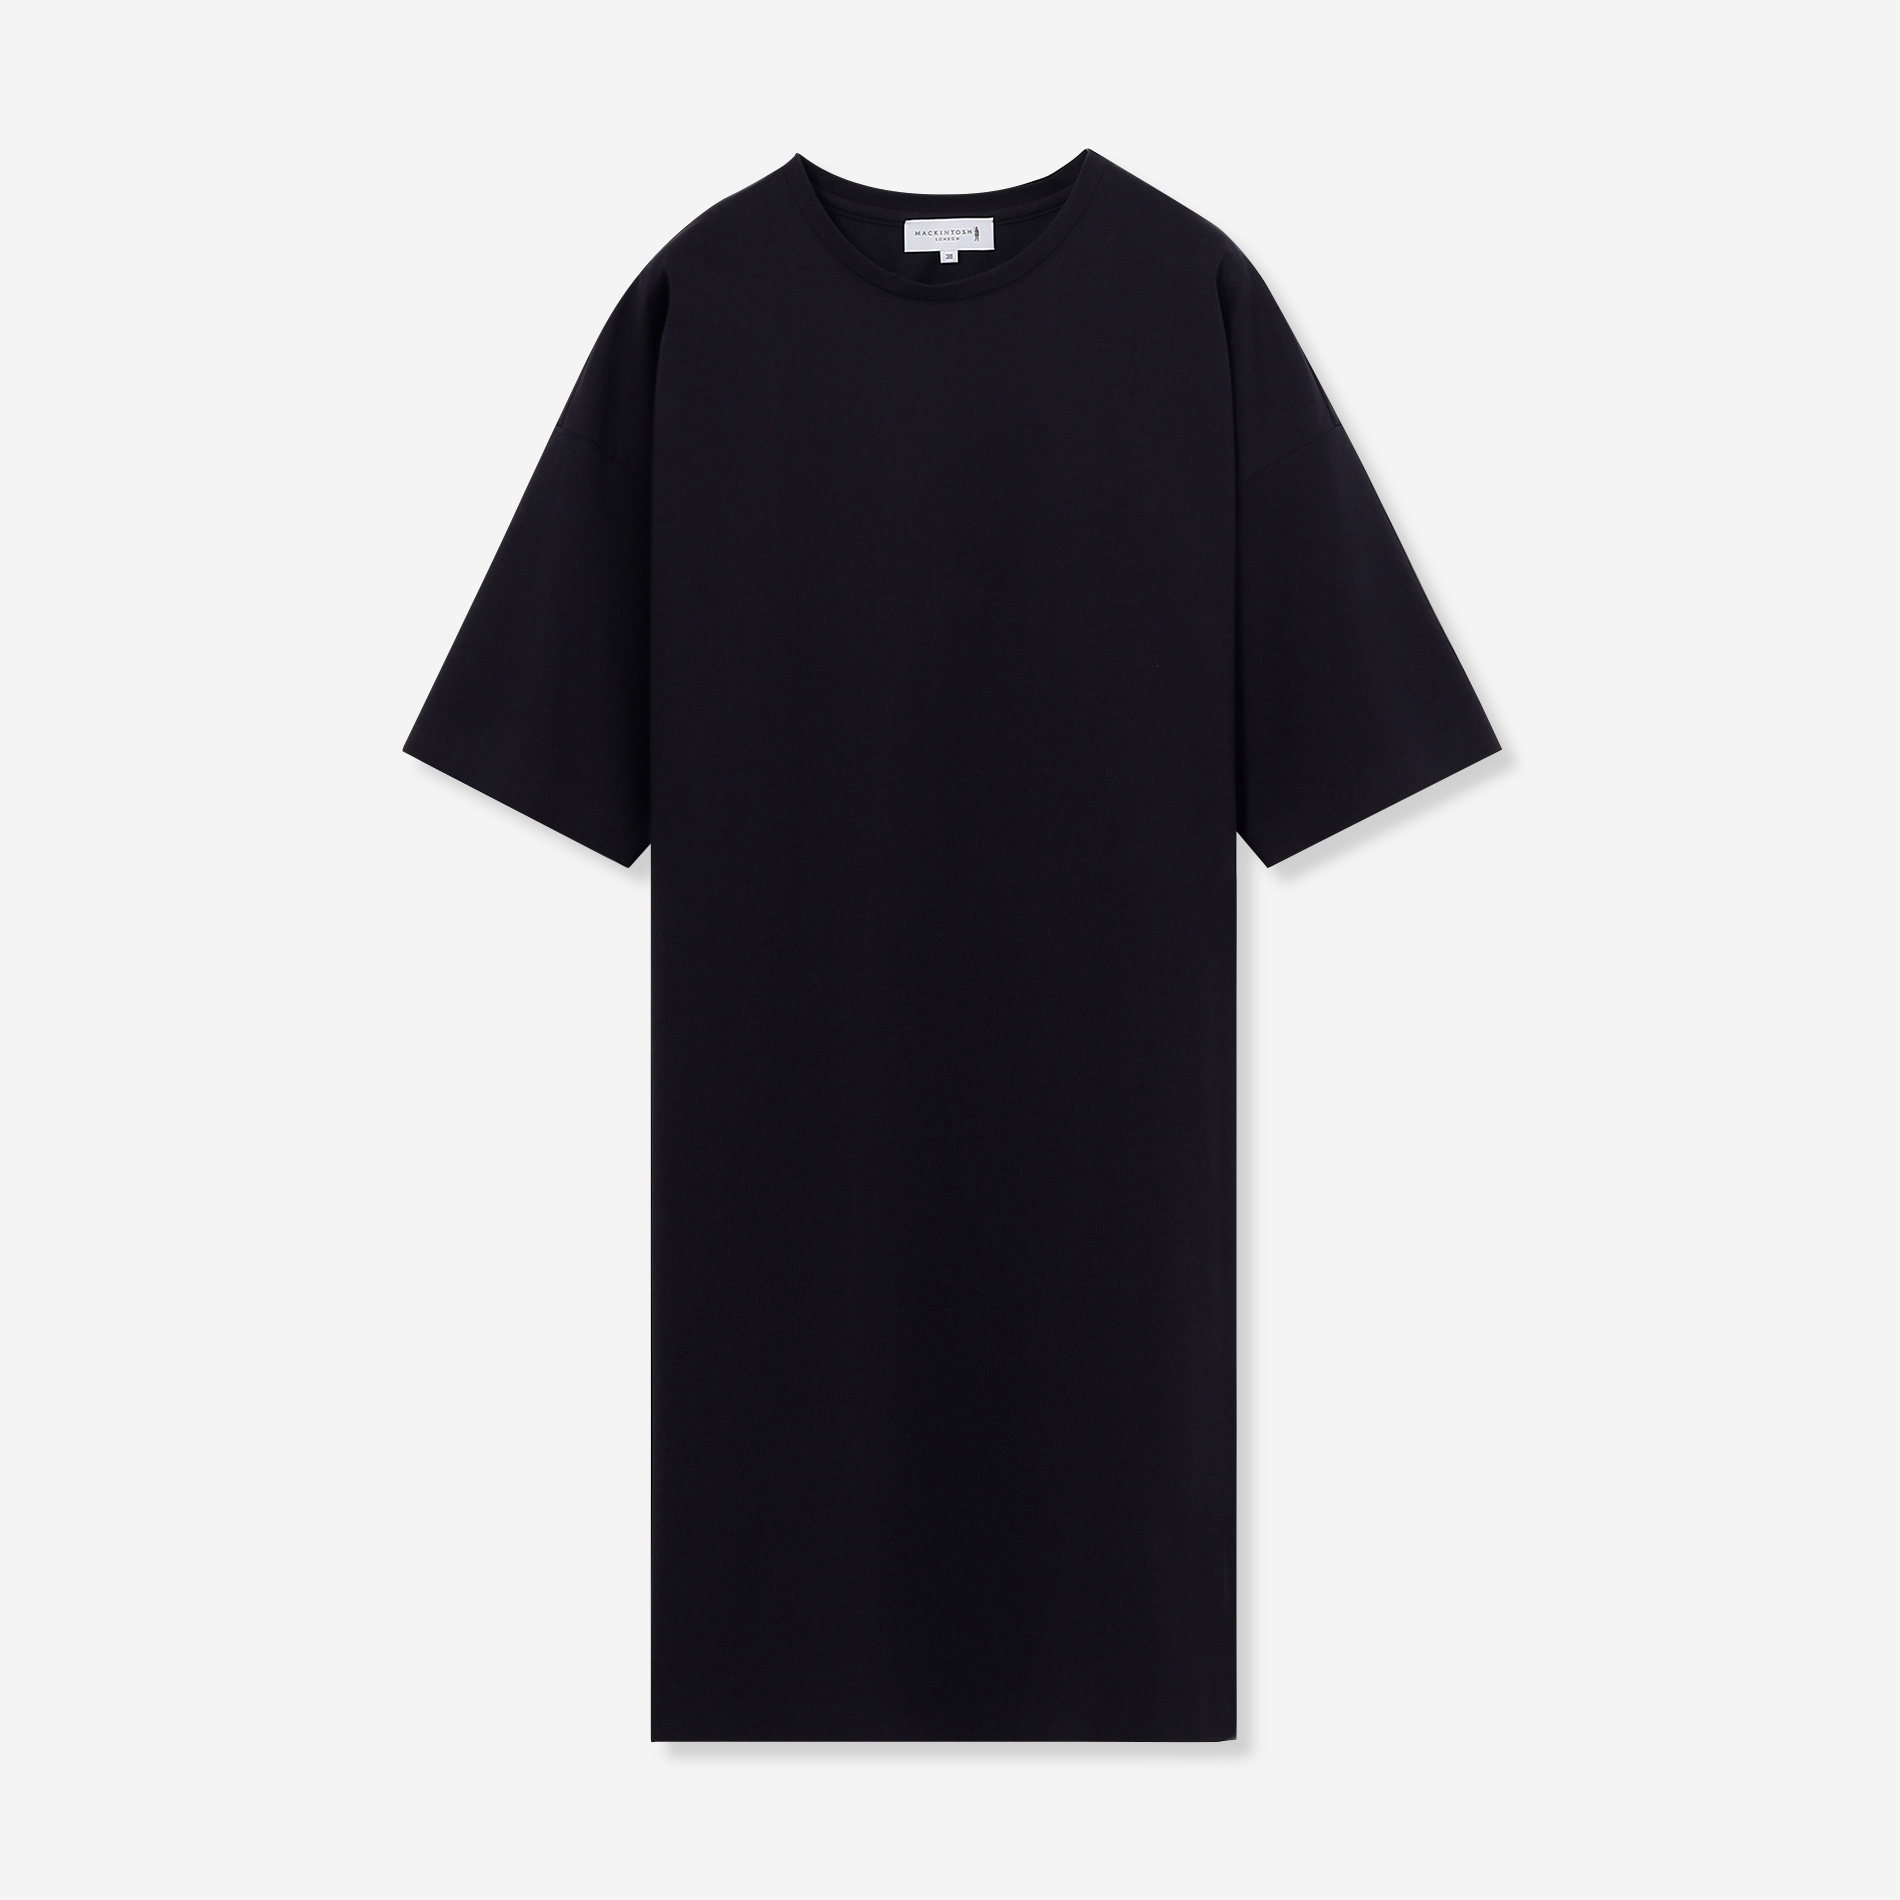 【The Essential Collection】プレーティング天竺チュニックTシャツ